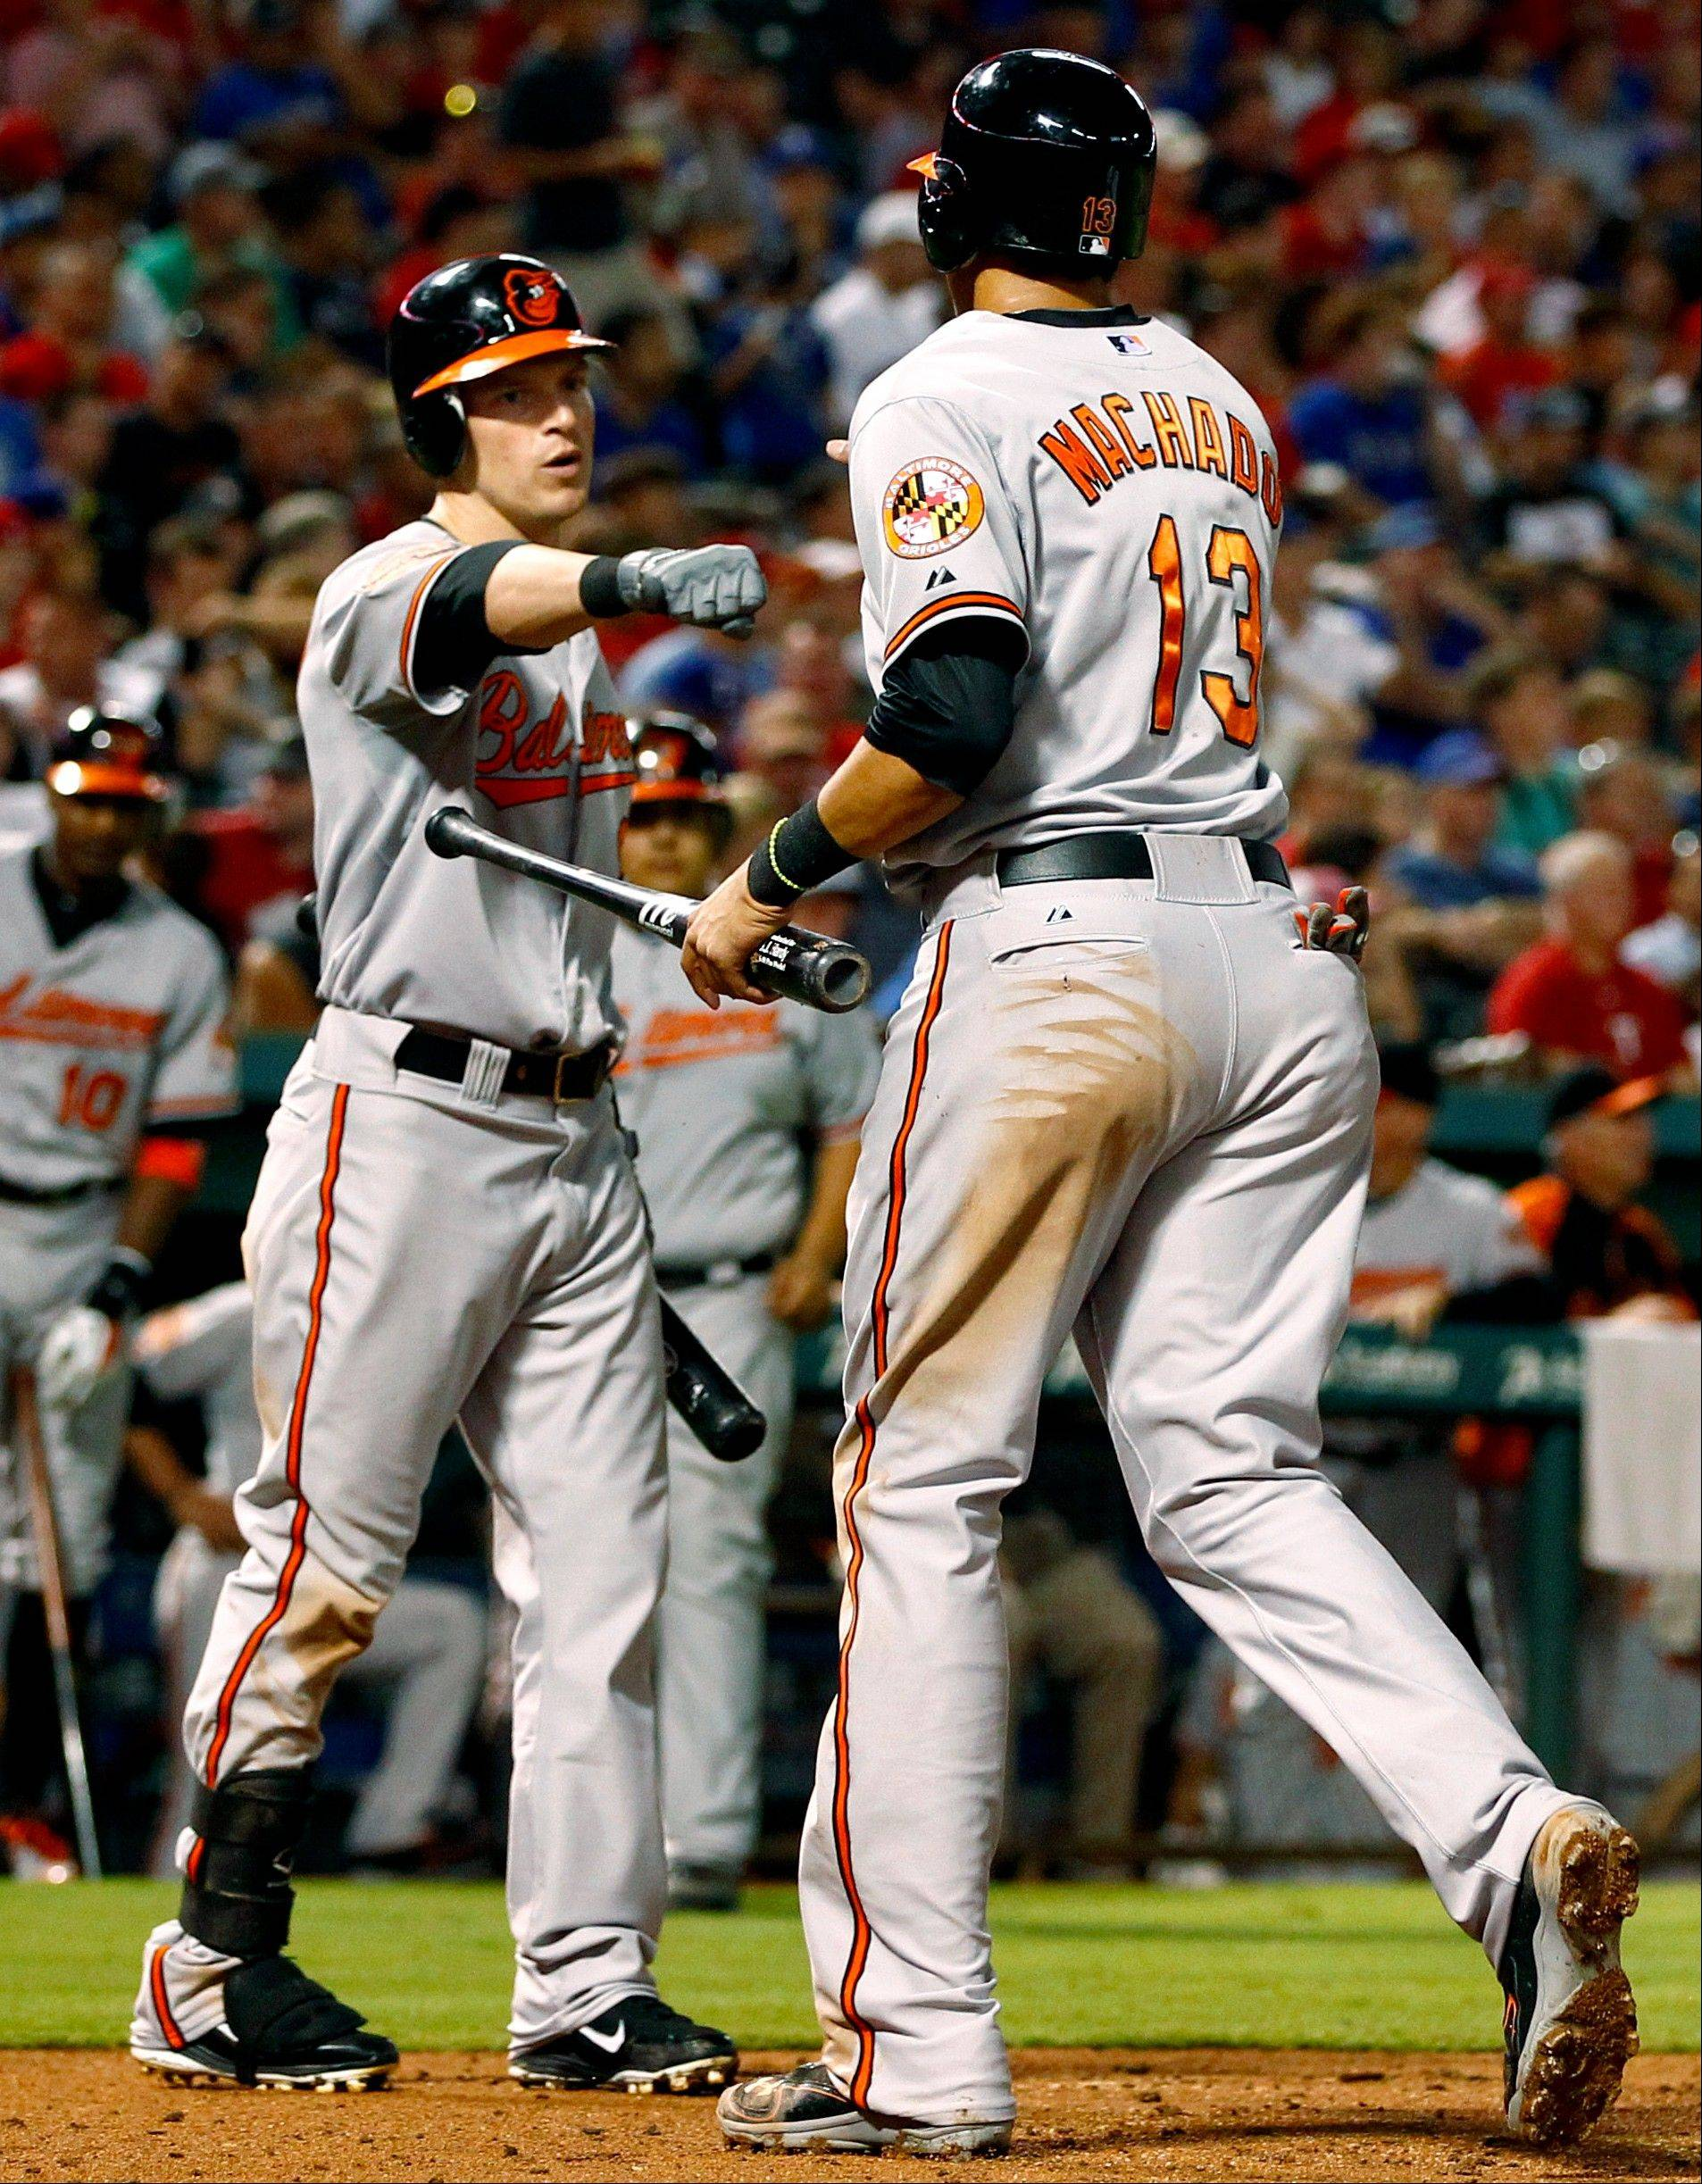 Baltimore's Manny Machado (13) is congratulated by Nate McLouth after scoring a run against the Texas Rangers in the fifth inning Tuesday in Arlington, Texas.